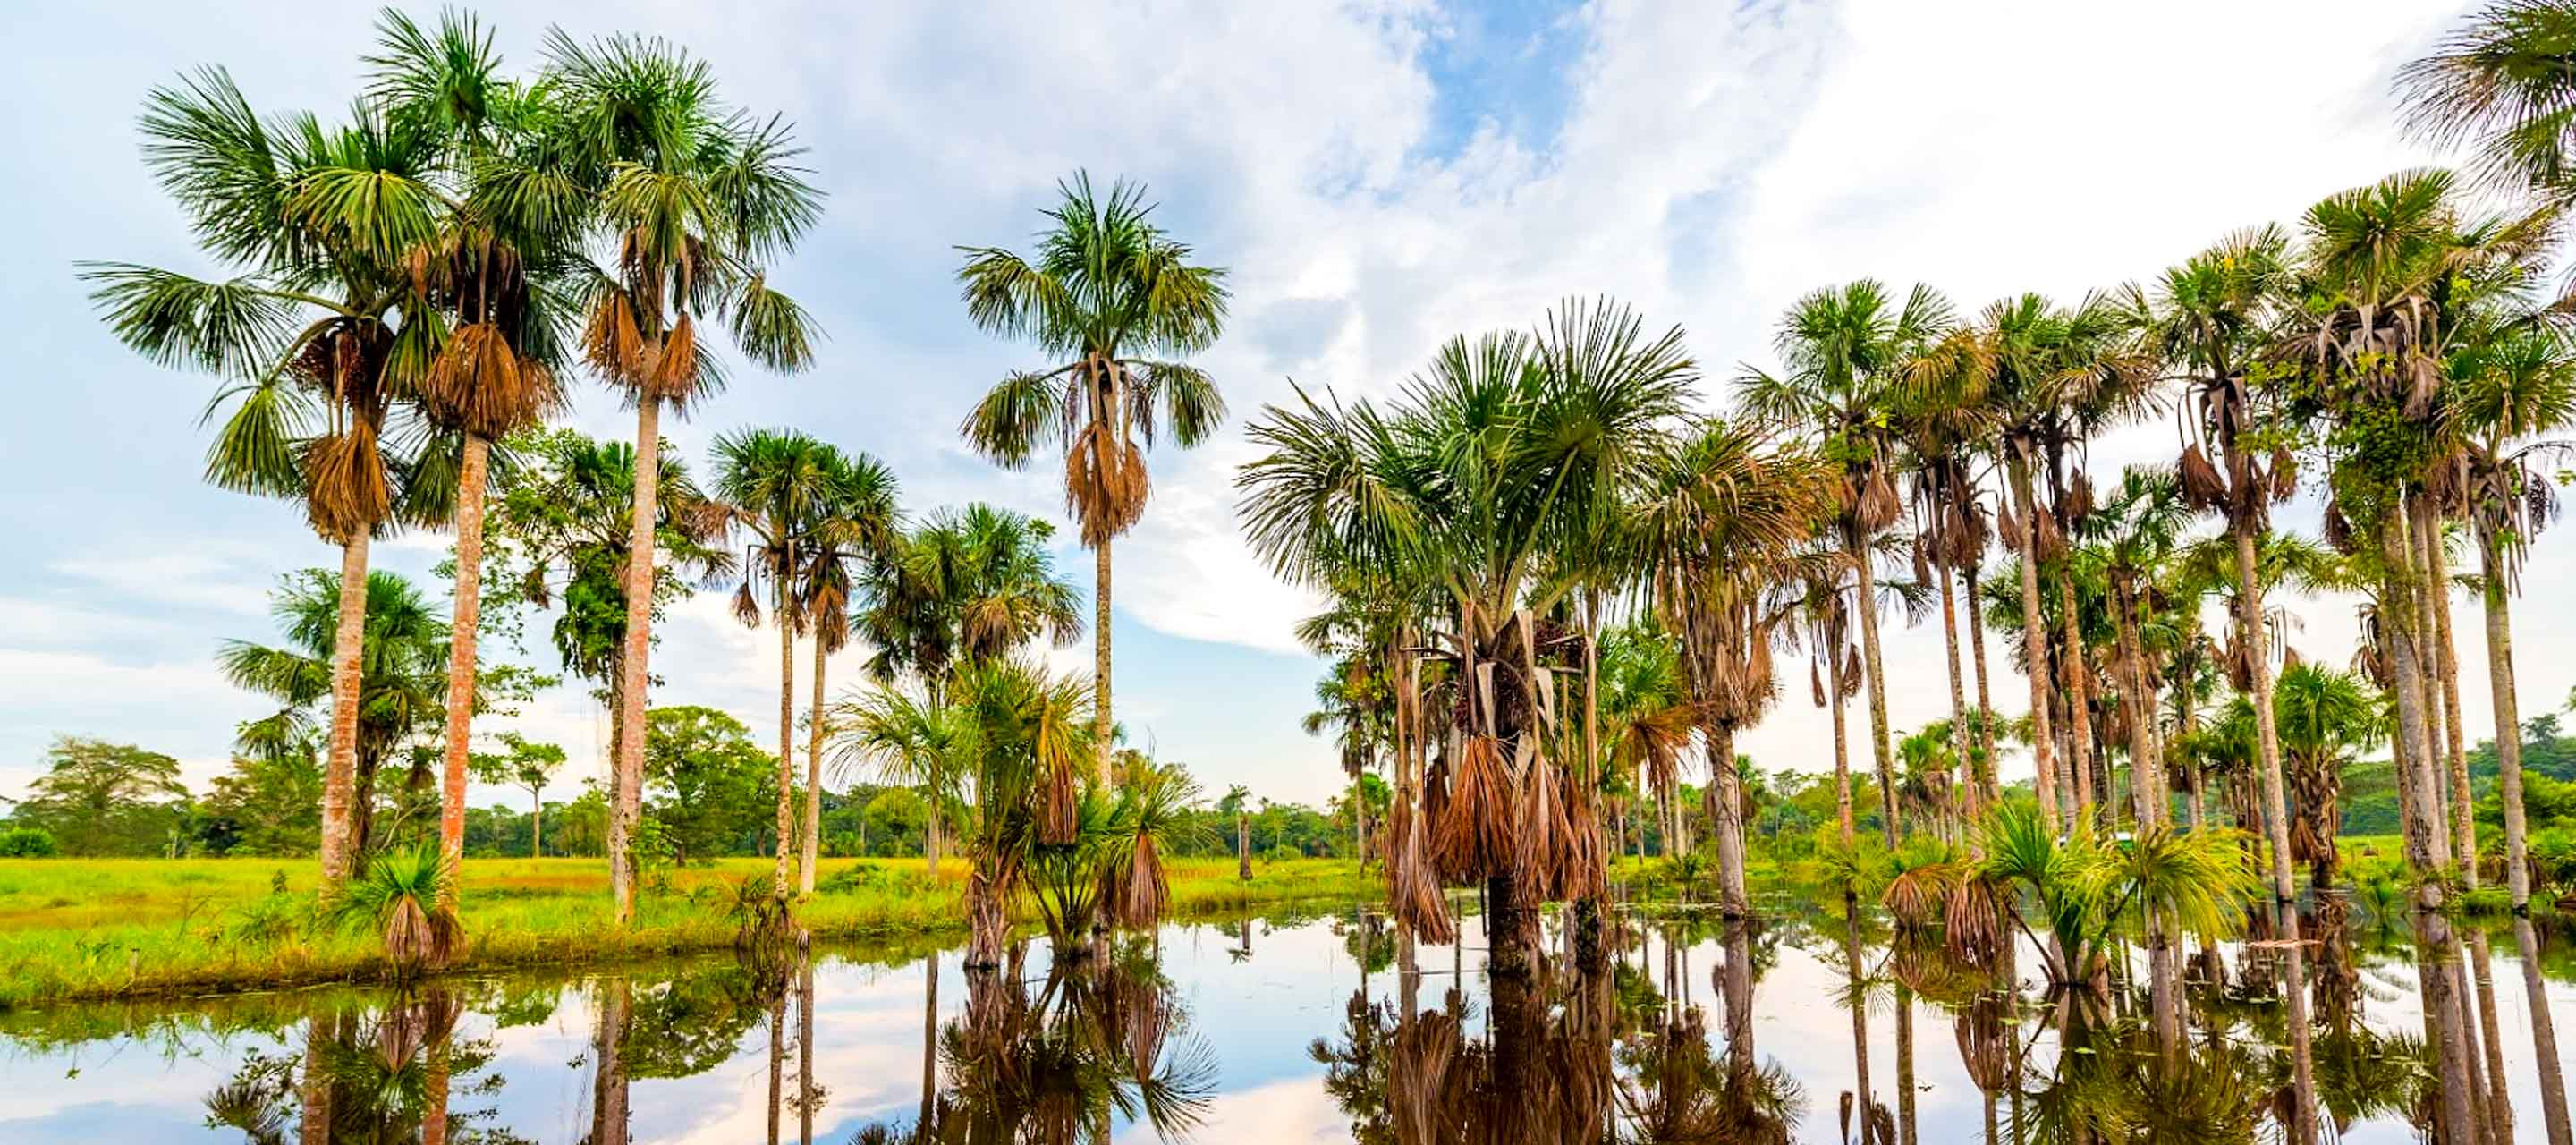 Colombia Rainforest and towering palm trees over pond